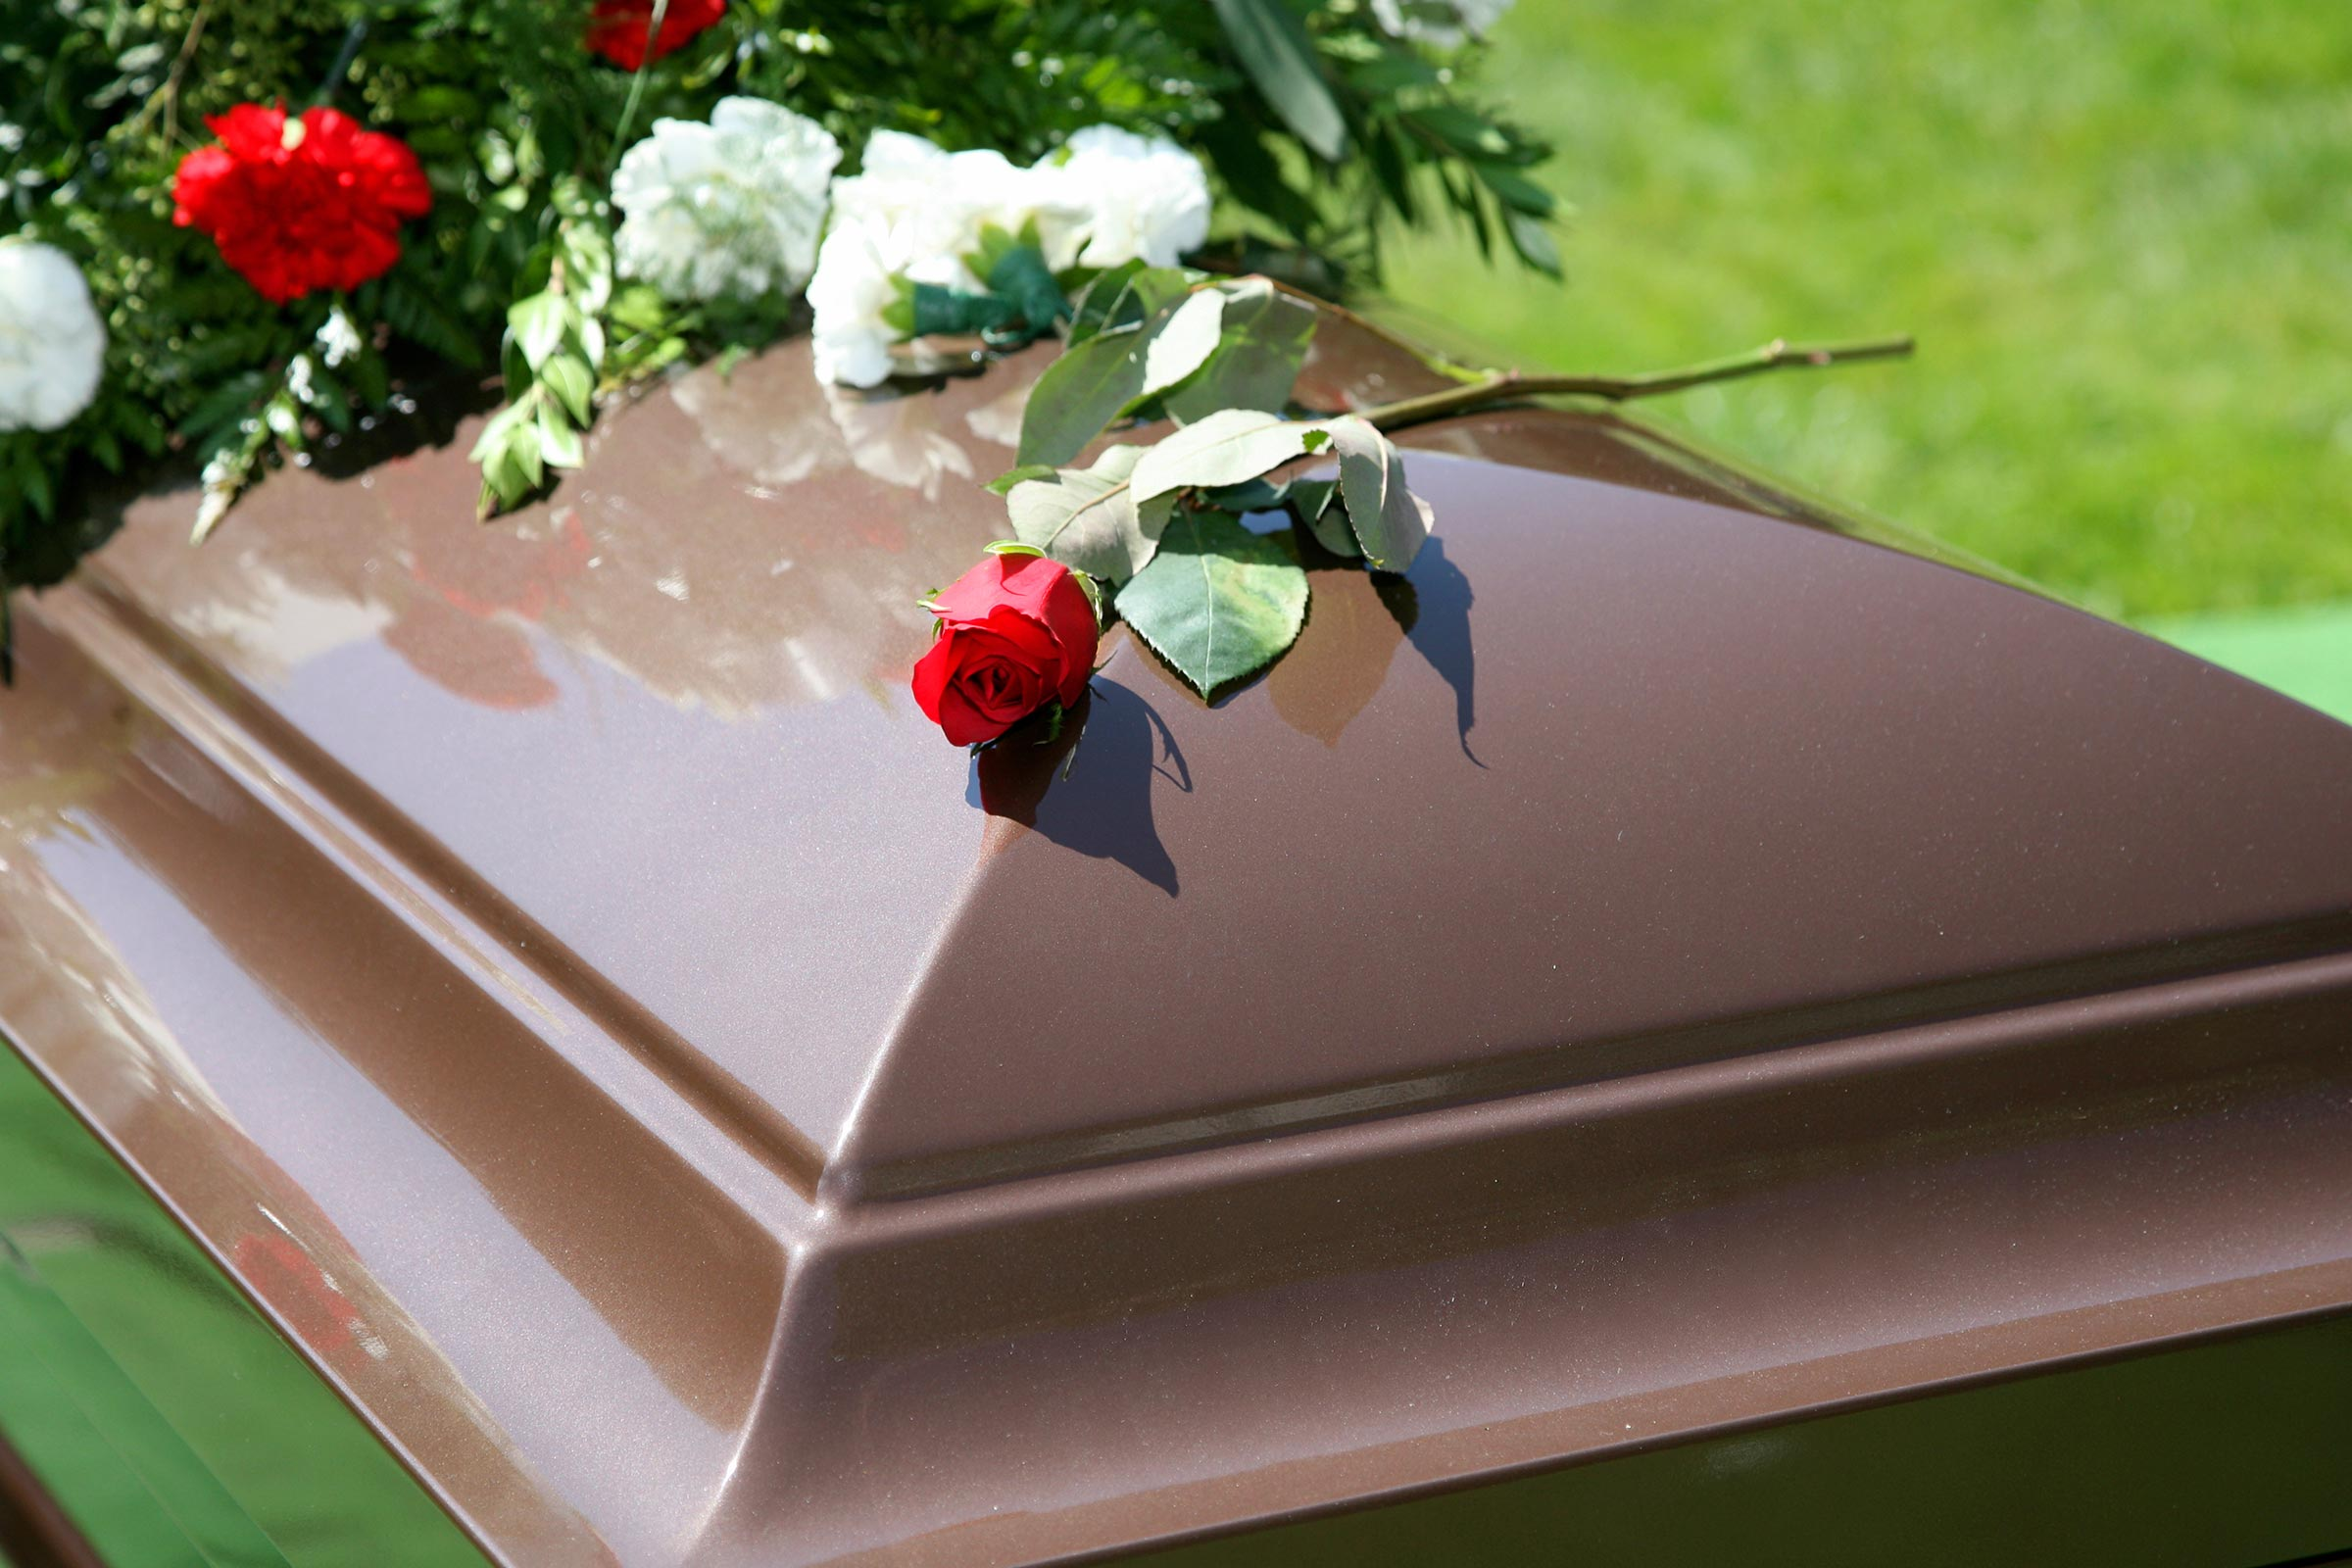 DEAD BODY EXPLODES IN FUNERAL HOME - THE HORROR MOVIES BLOG